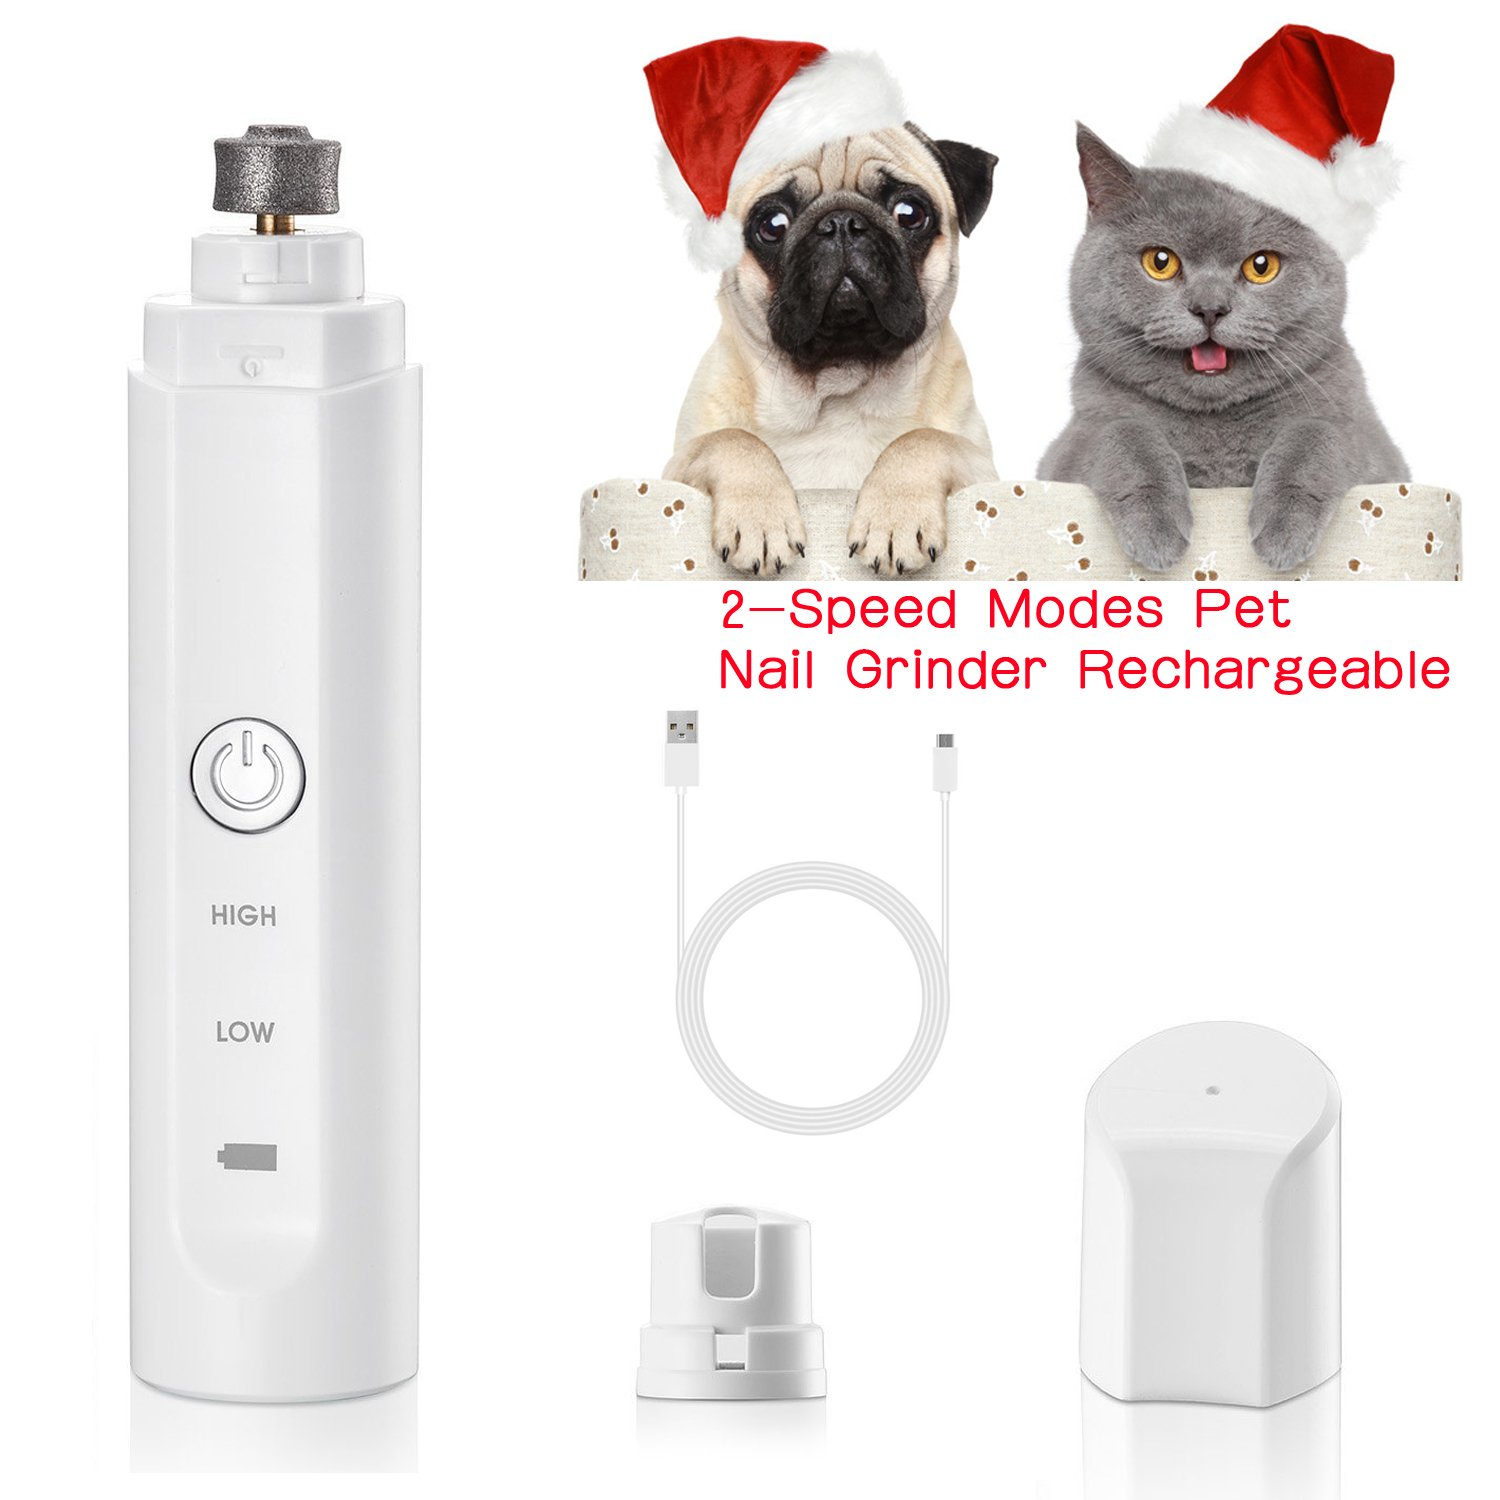 Upgraded 2 Speed Modes Pet Nail Grinder for Painless Paws Trimming Electric Rechargeable USB Charging Dog Nail Grinder Grooming Tools for Small Medium Large Dogs Cats and Other Animal Paws